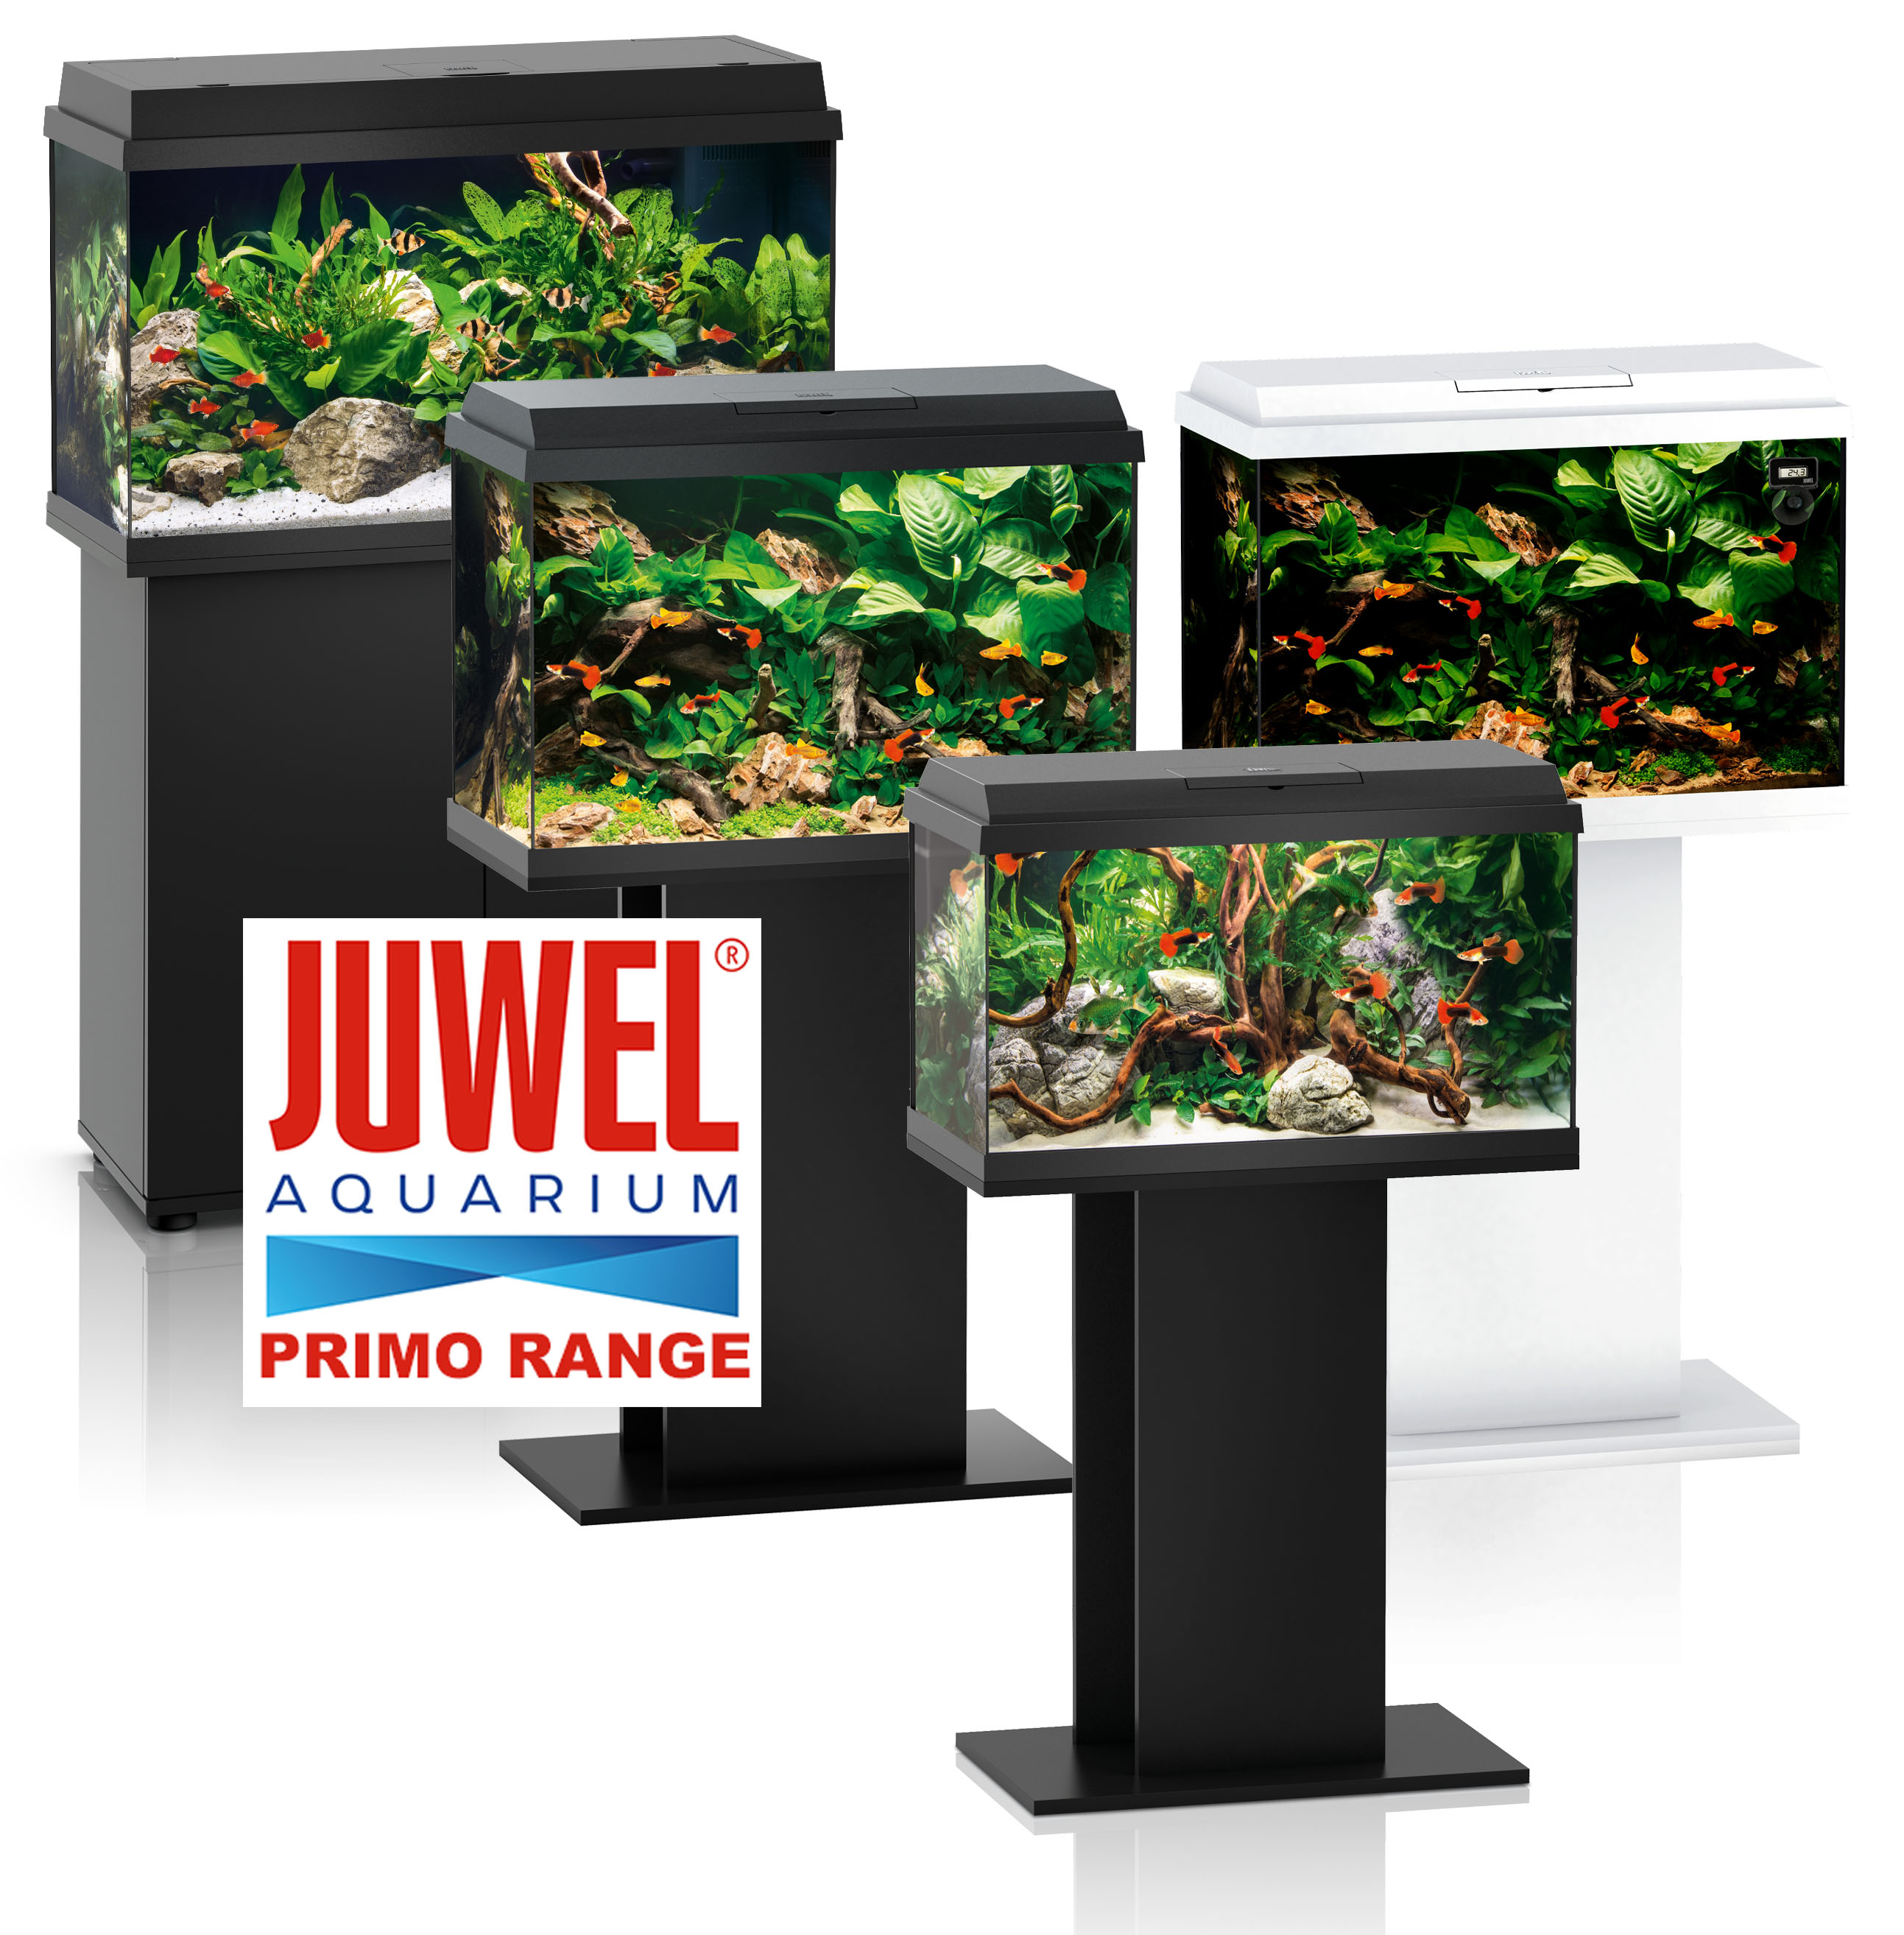 Juwel aquarium fish tank cabinet rio trigon vision vio for Fish tank lighting